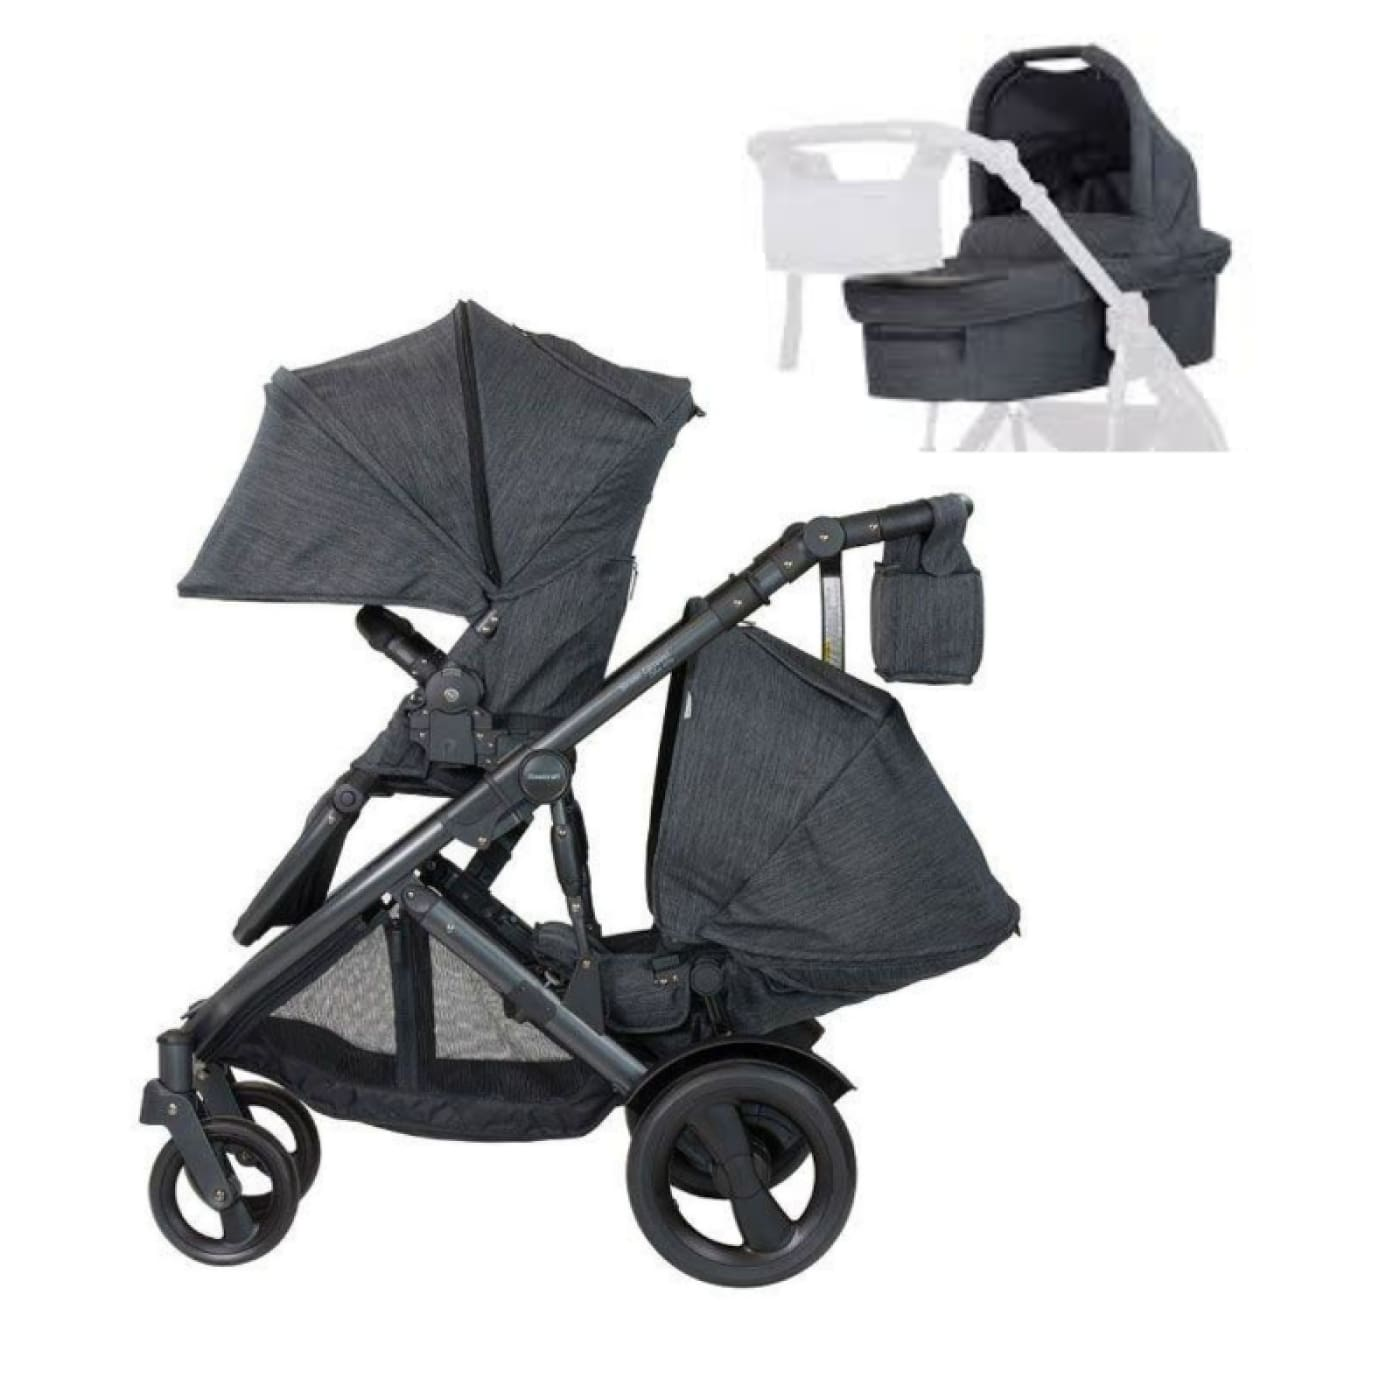 Steelcraft Strider Compact Deluxe Textured Collection Pram Second Seat & Bassinet Display Package Granite - PRAMS & STROLLERS - PACKAGES